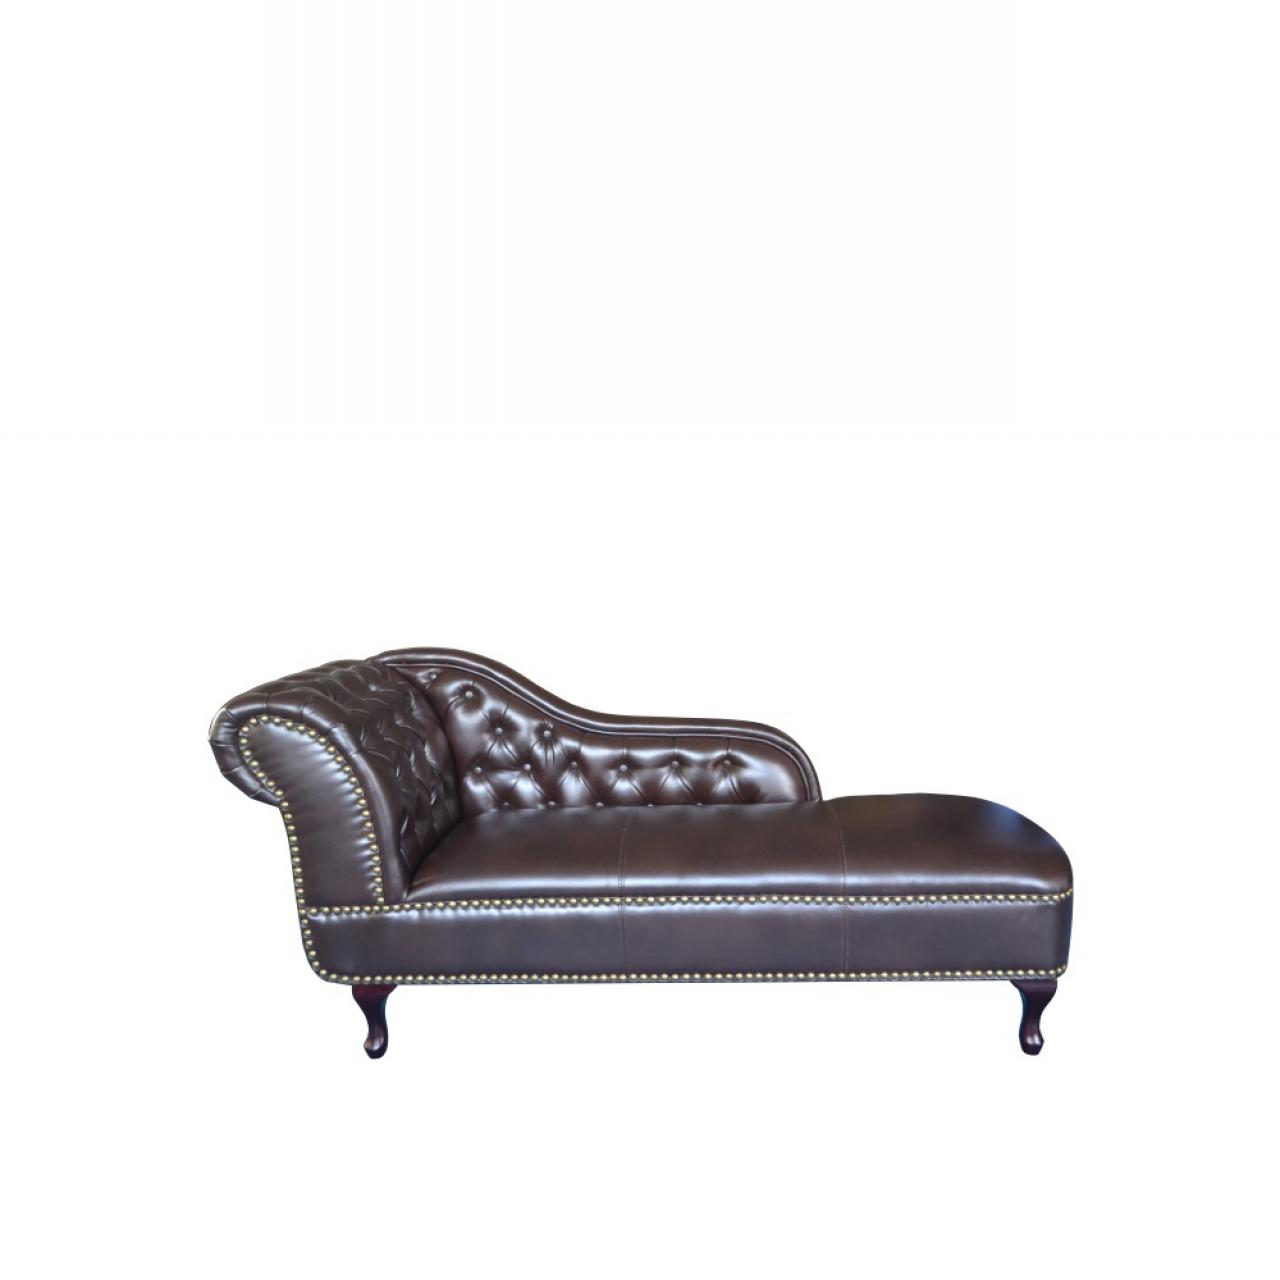 Recamiere Chesterfield